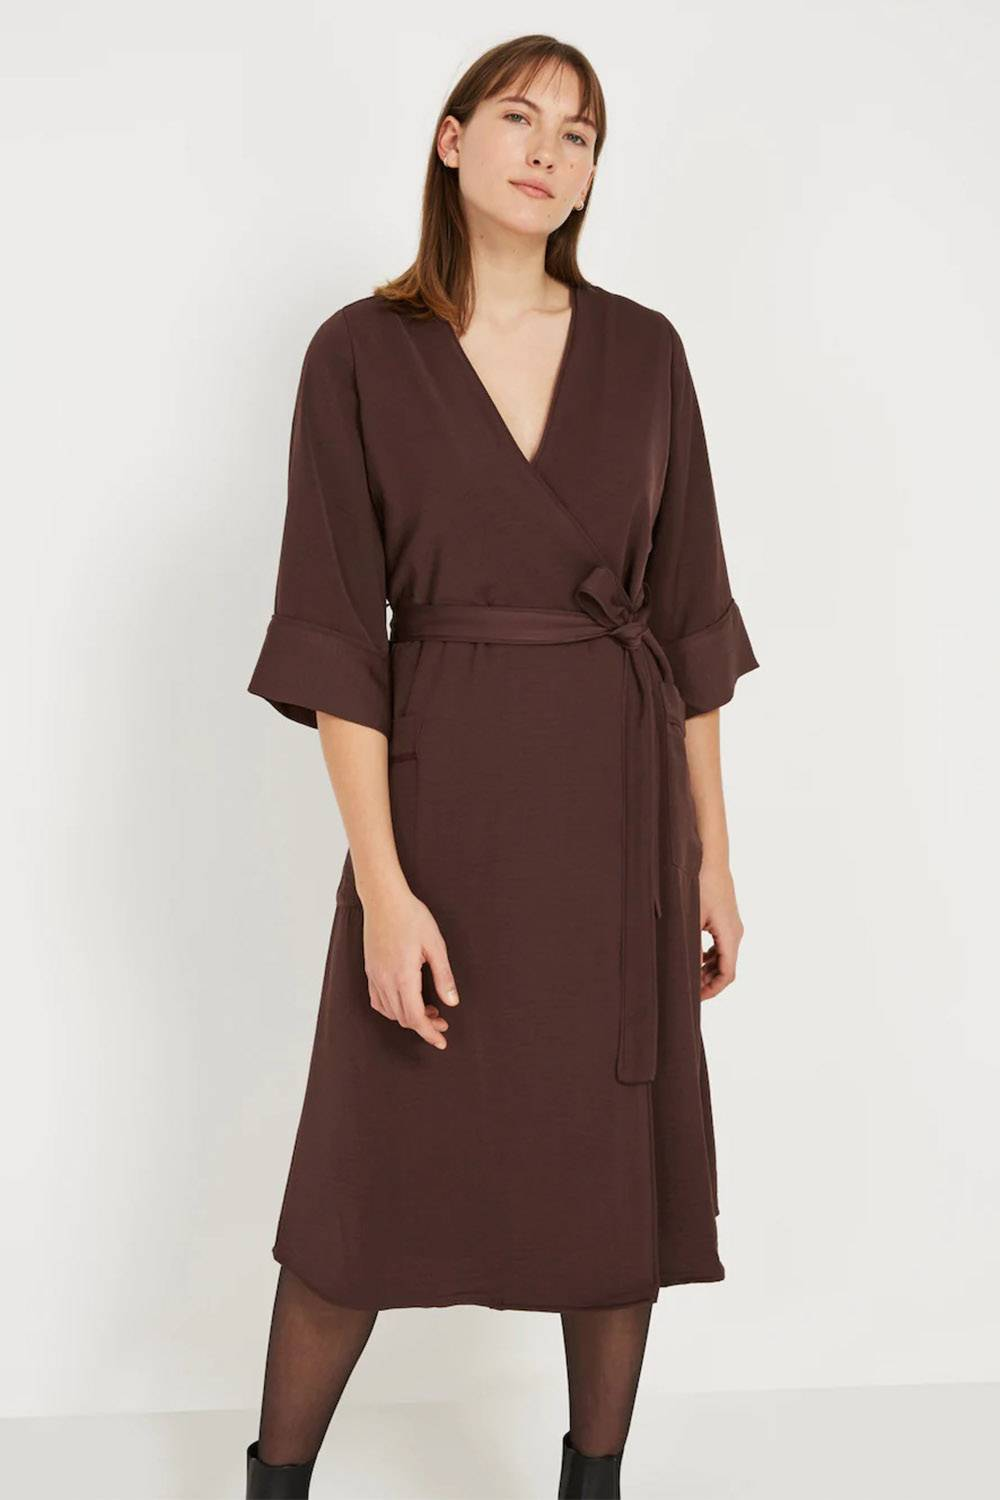 frank and oak sustainable affordable robes